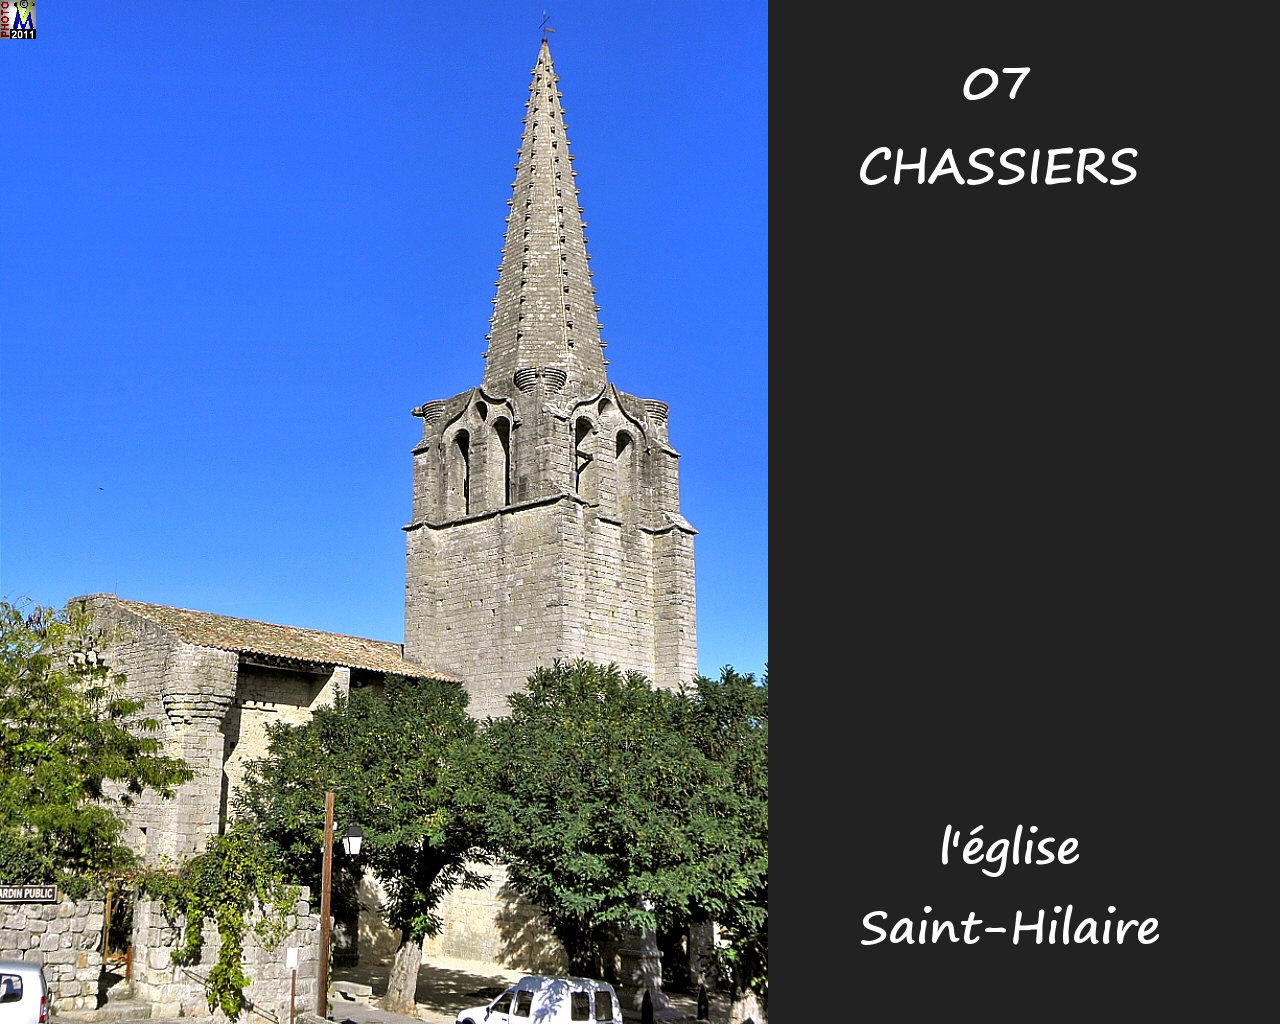 07CHASSIERS_eglise_102.jpg